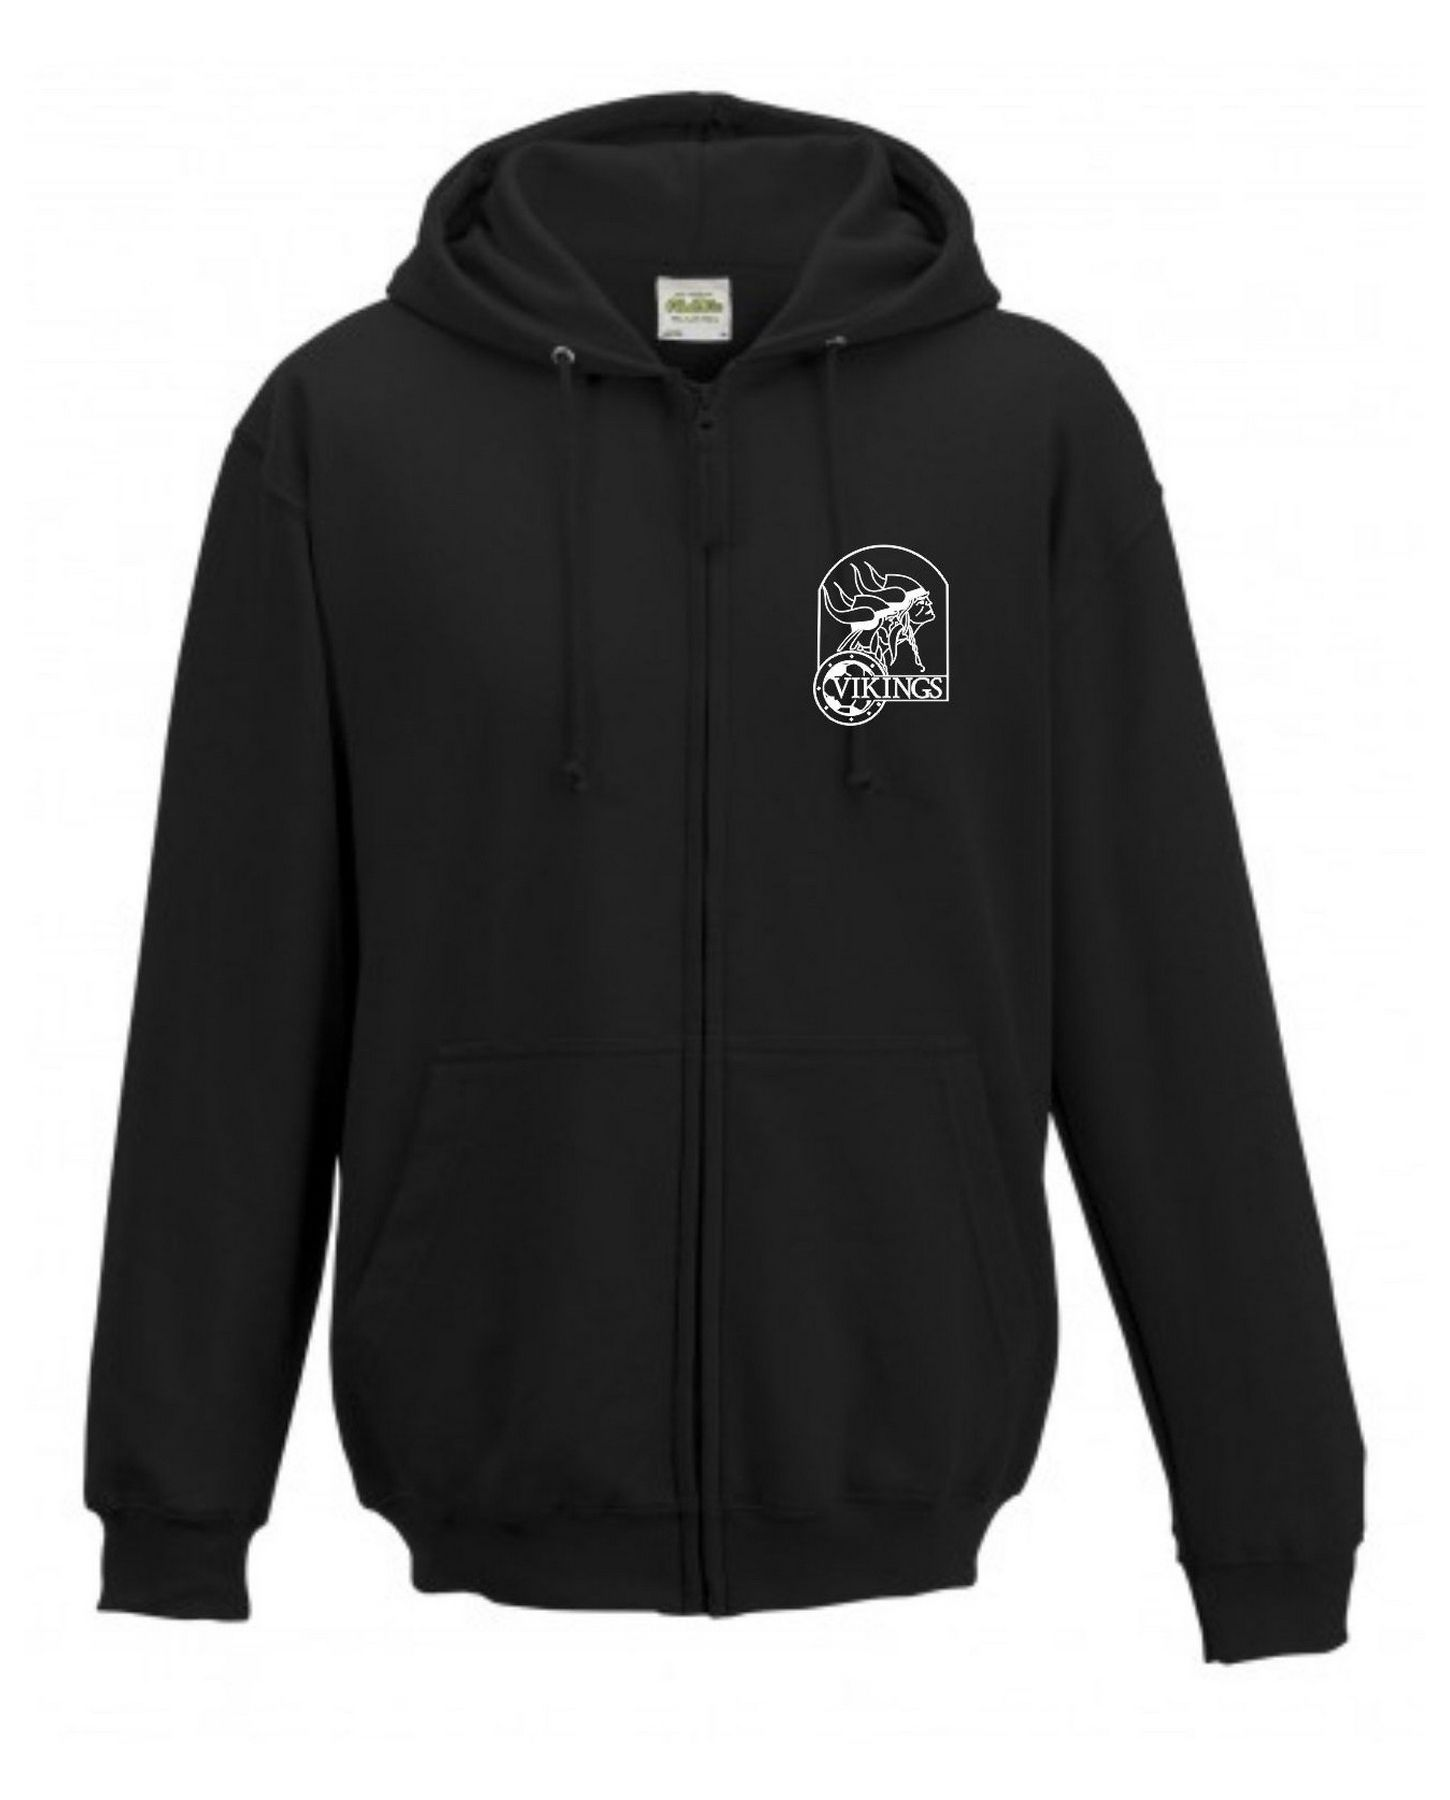 Vikings Hoodie with Zip Adult